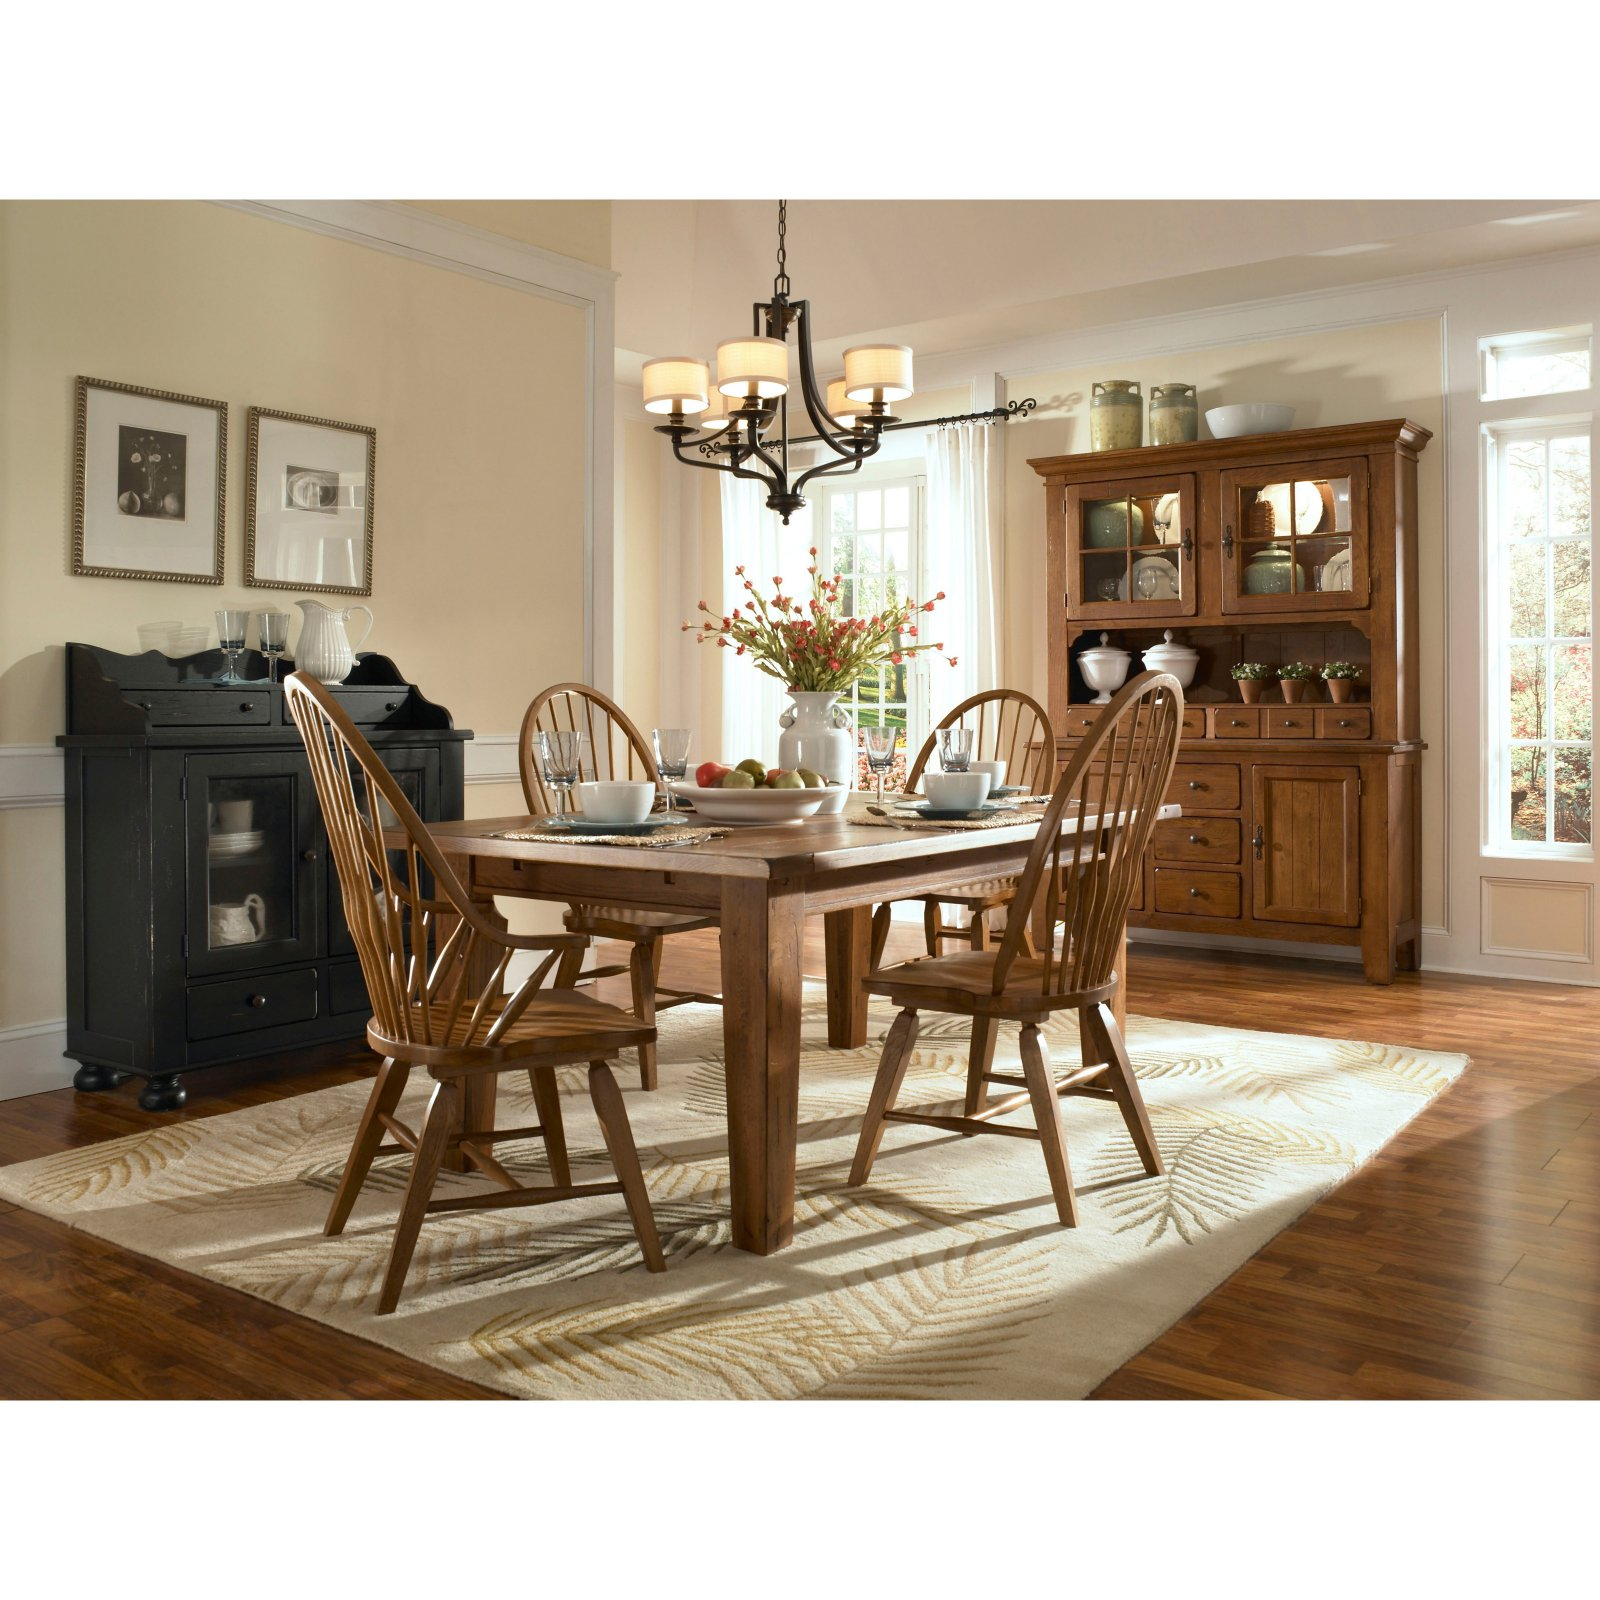 Broyhill Attic Heirlooms 72 In Rectangular Dining Table With Extension Walmart Com Walmart Com